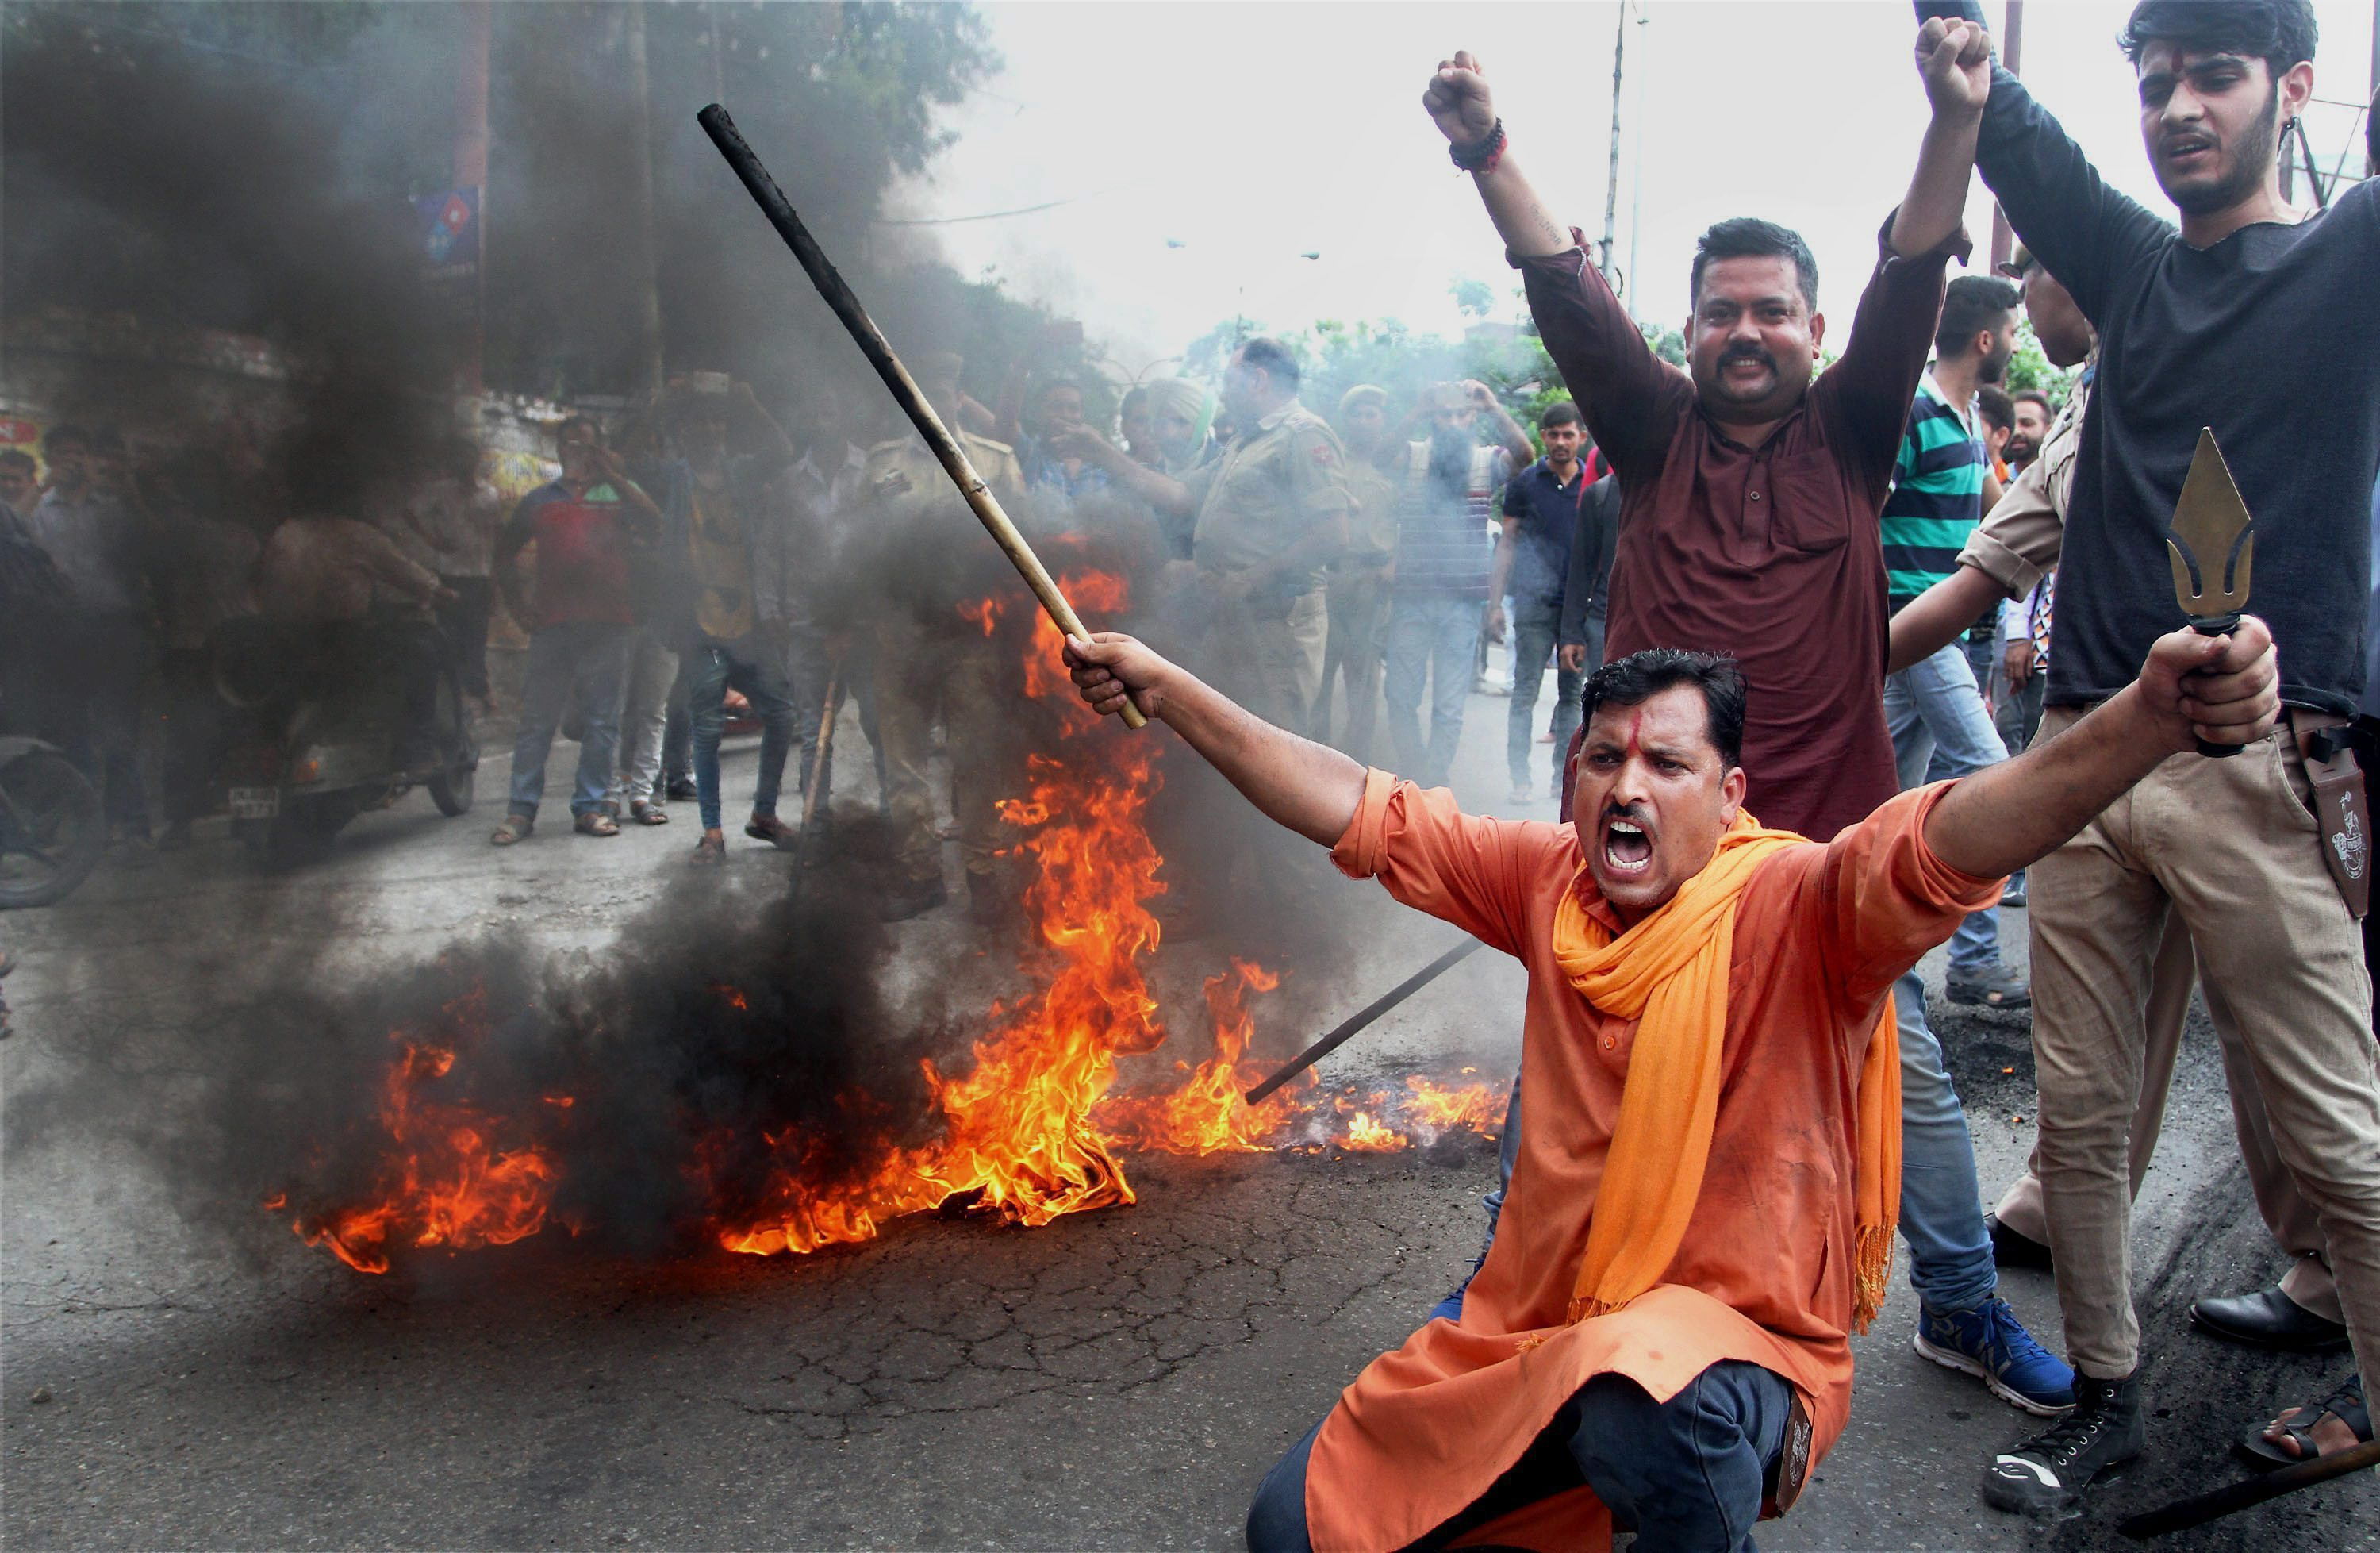 Bajrang Dal activists burn tyres and block a road in Jammu after a bandh was called in response to the Amarnath attack. (Credit: PTI)